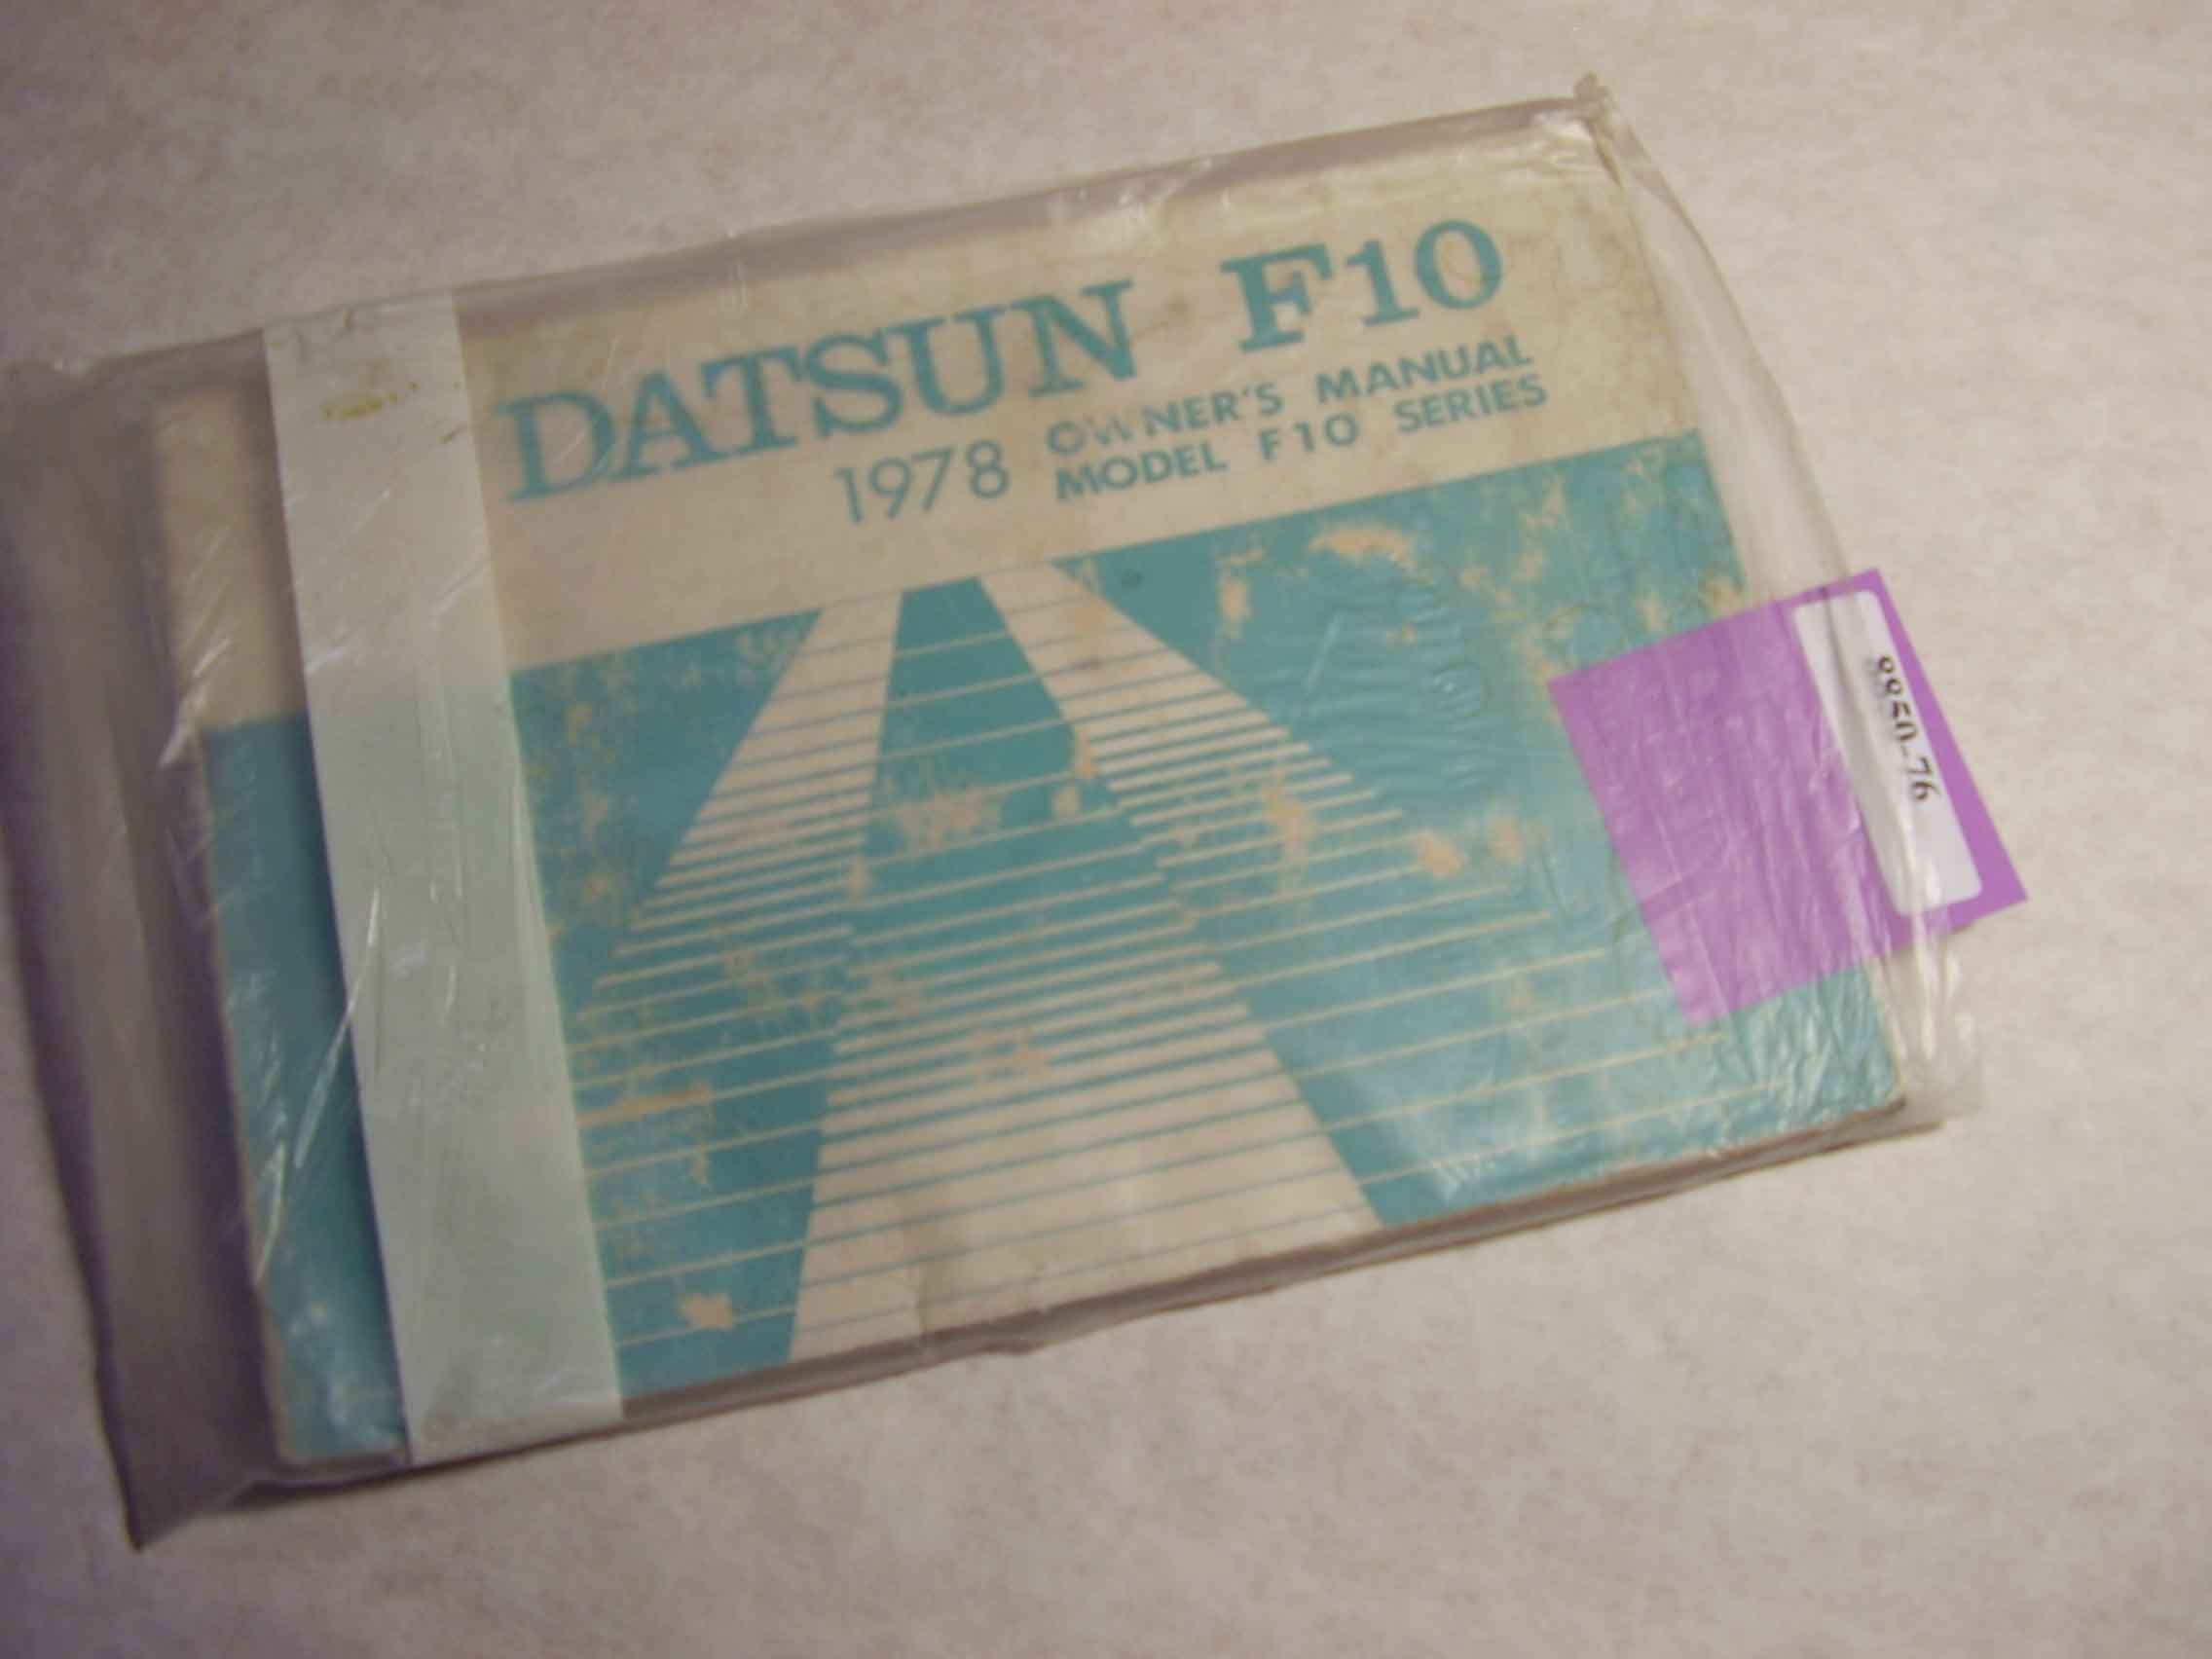 1978 Datsun F10 Owners Manual